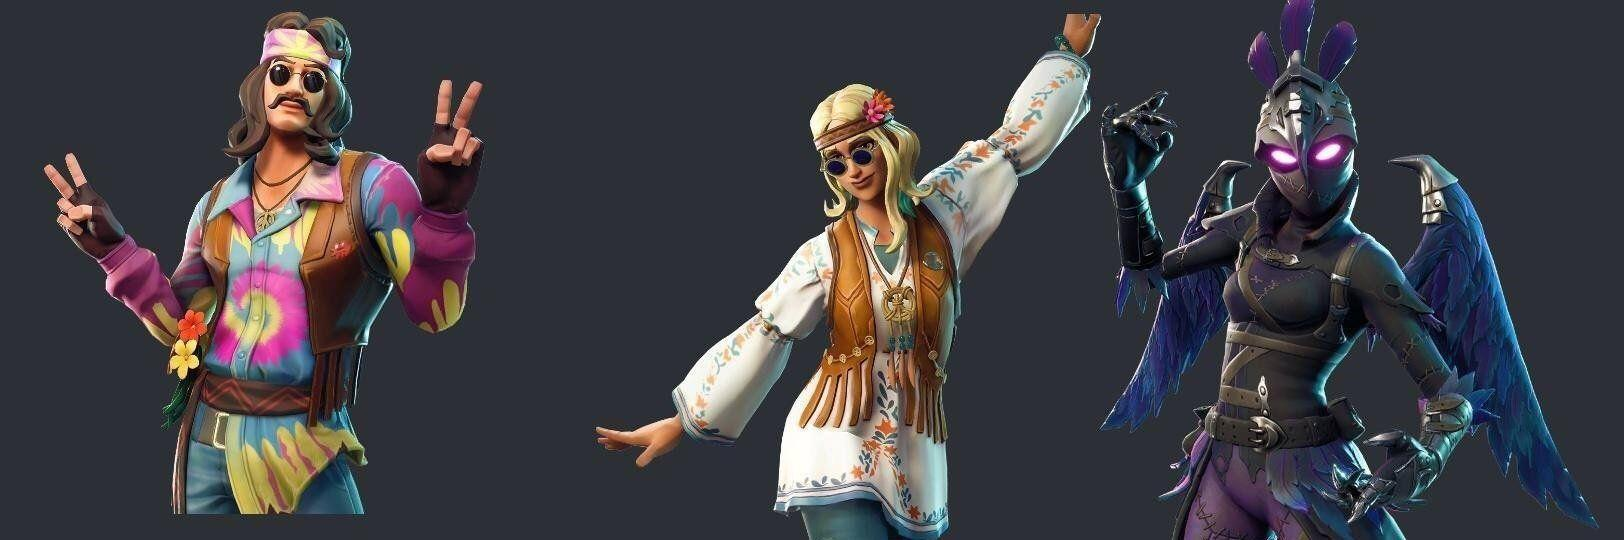 Fortnite Leaked Skins & Emotes Include Road Trip, Musha, Dreamflower